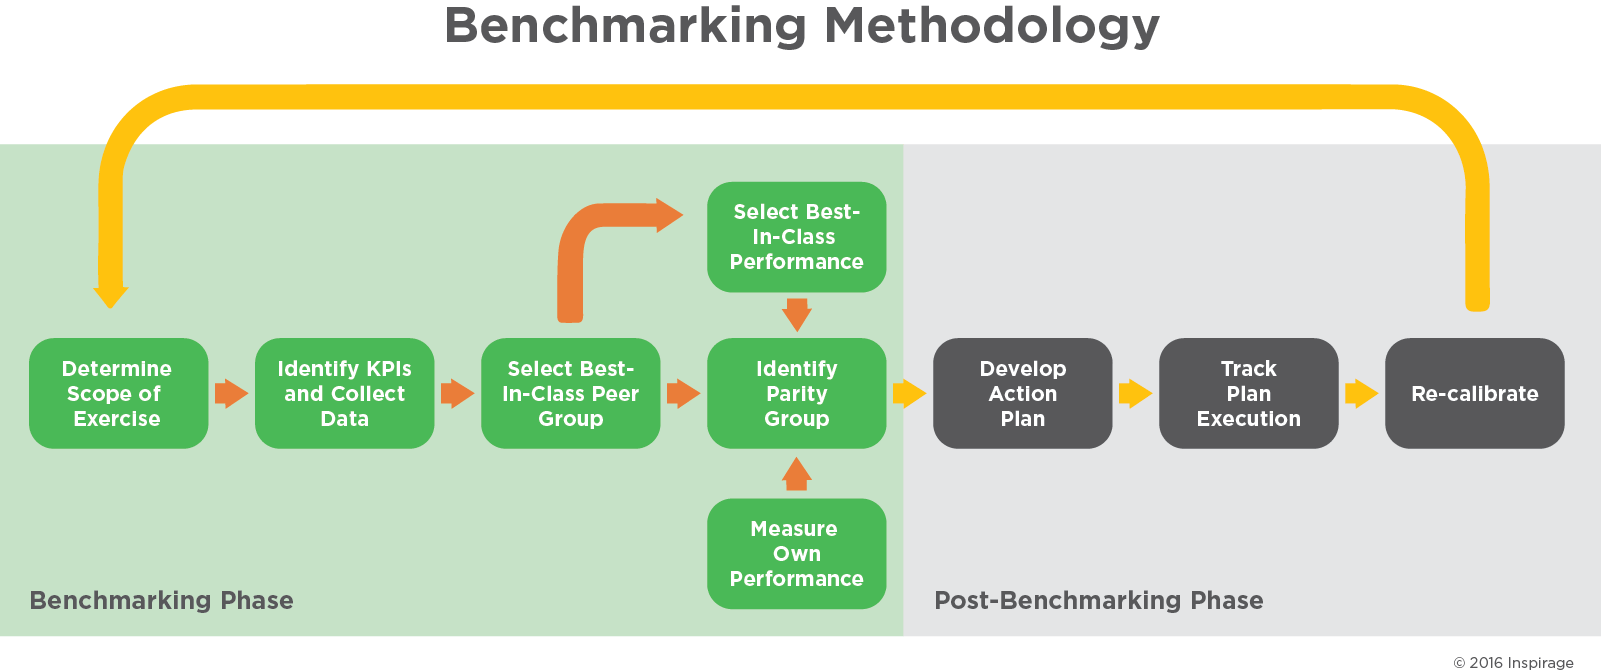 benchmarking-methodology